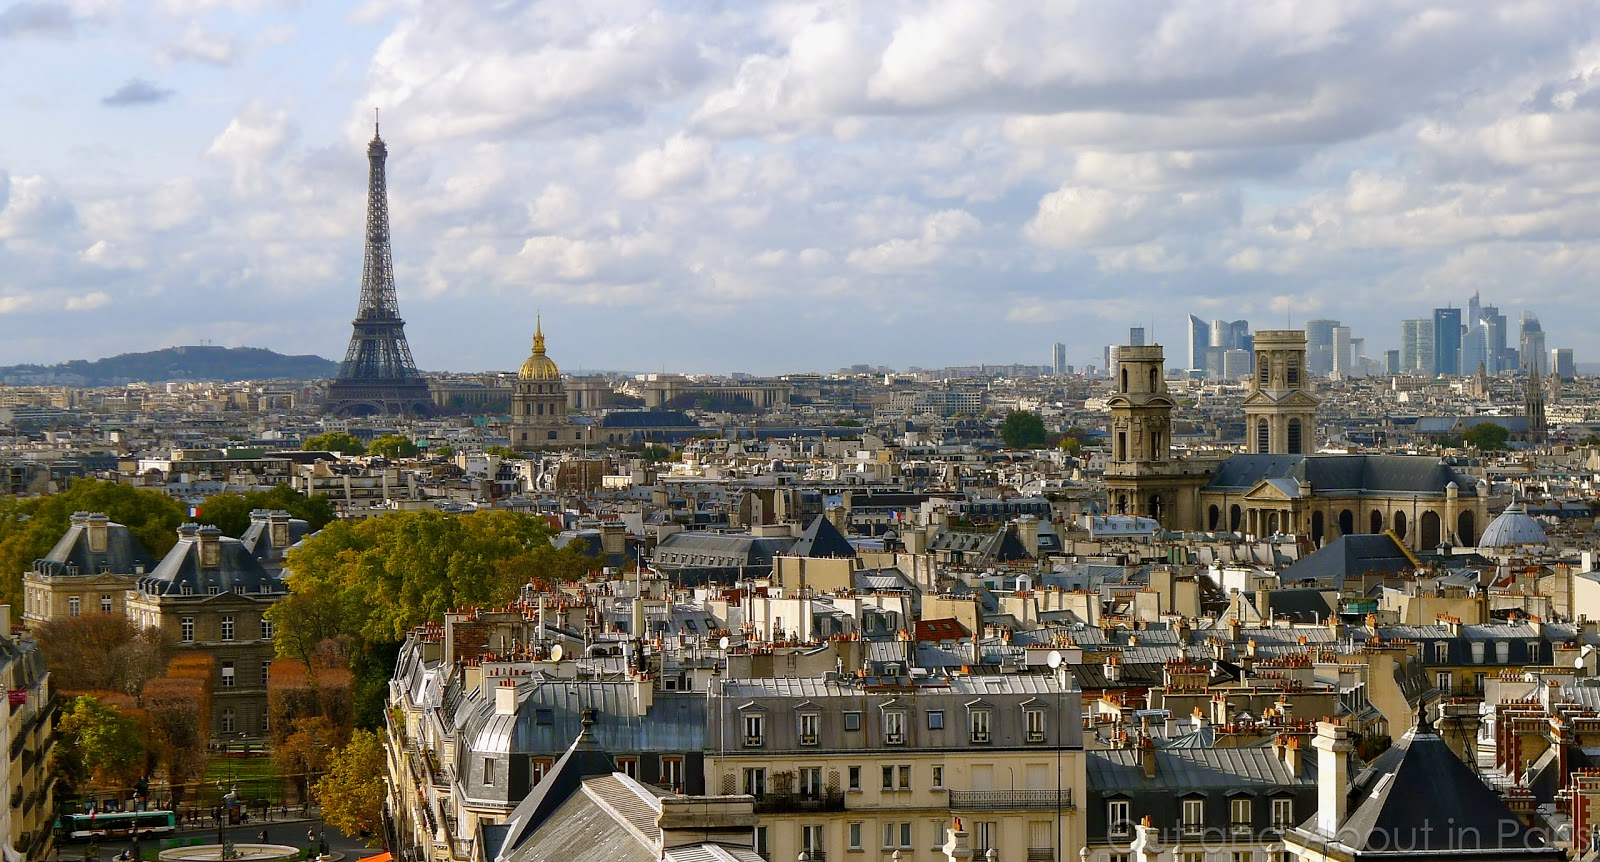 Good news and bad news - Pantheon offers the best views of Paris